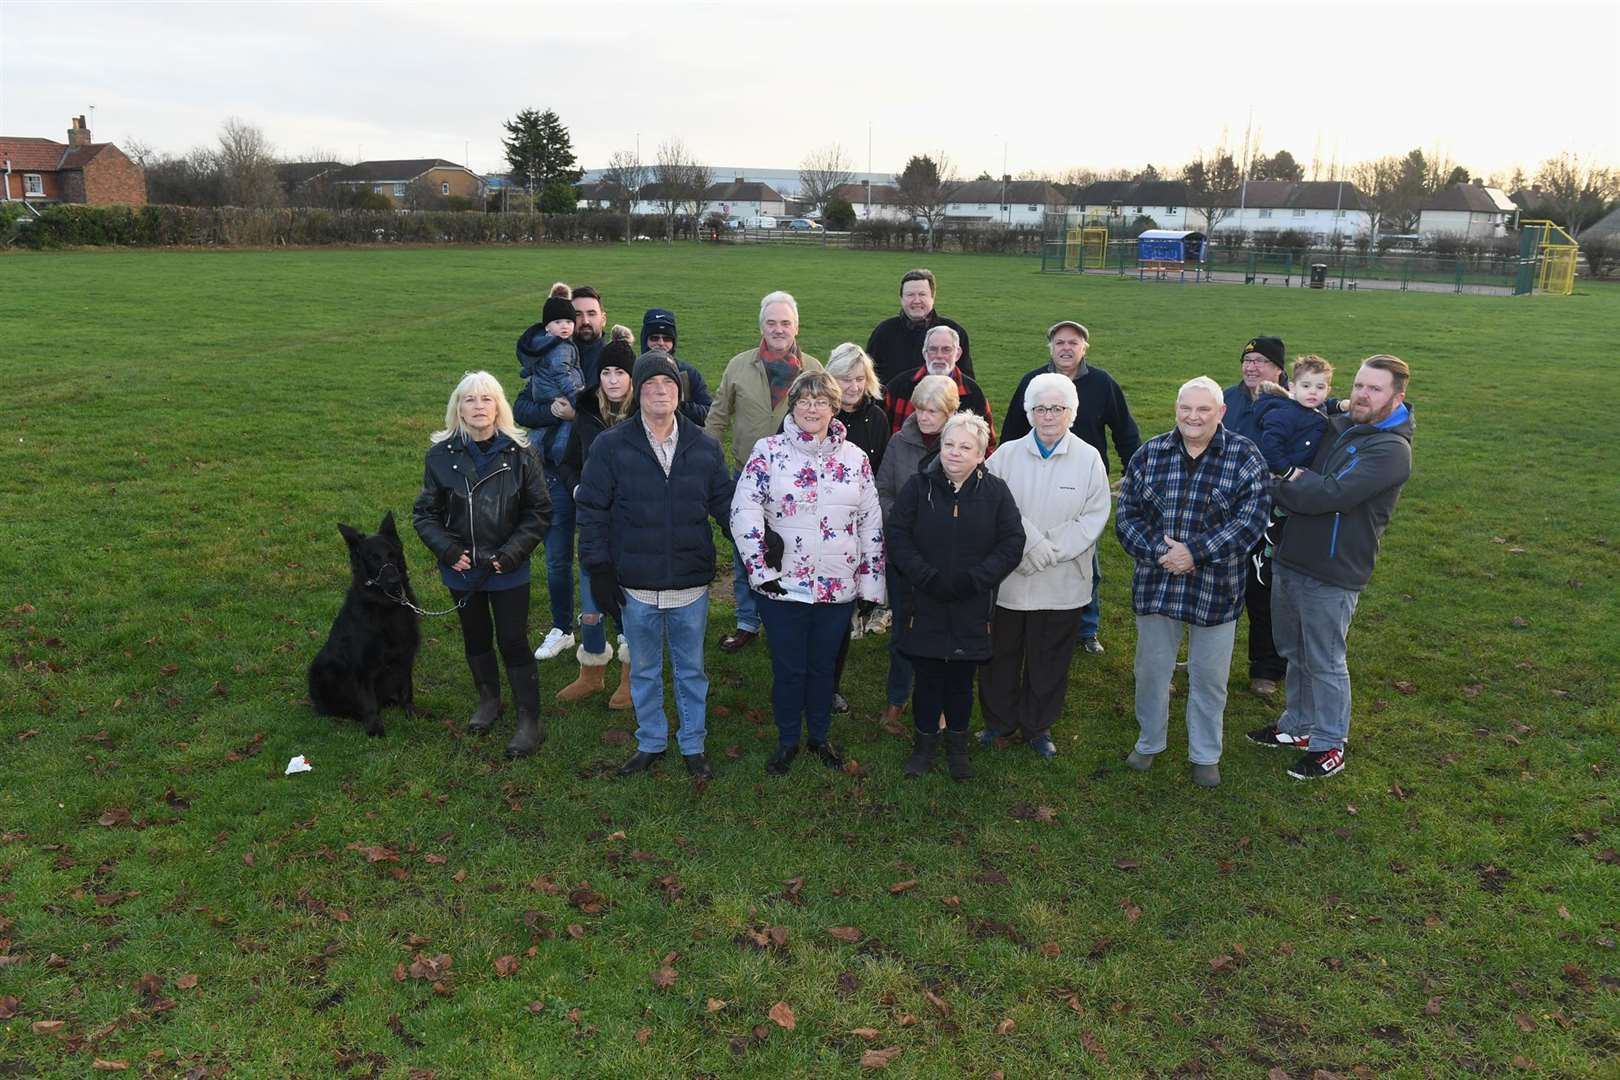 Residents unhappy that Cedar Avenue Playing Field has been sold and is part of planning permission.